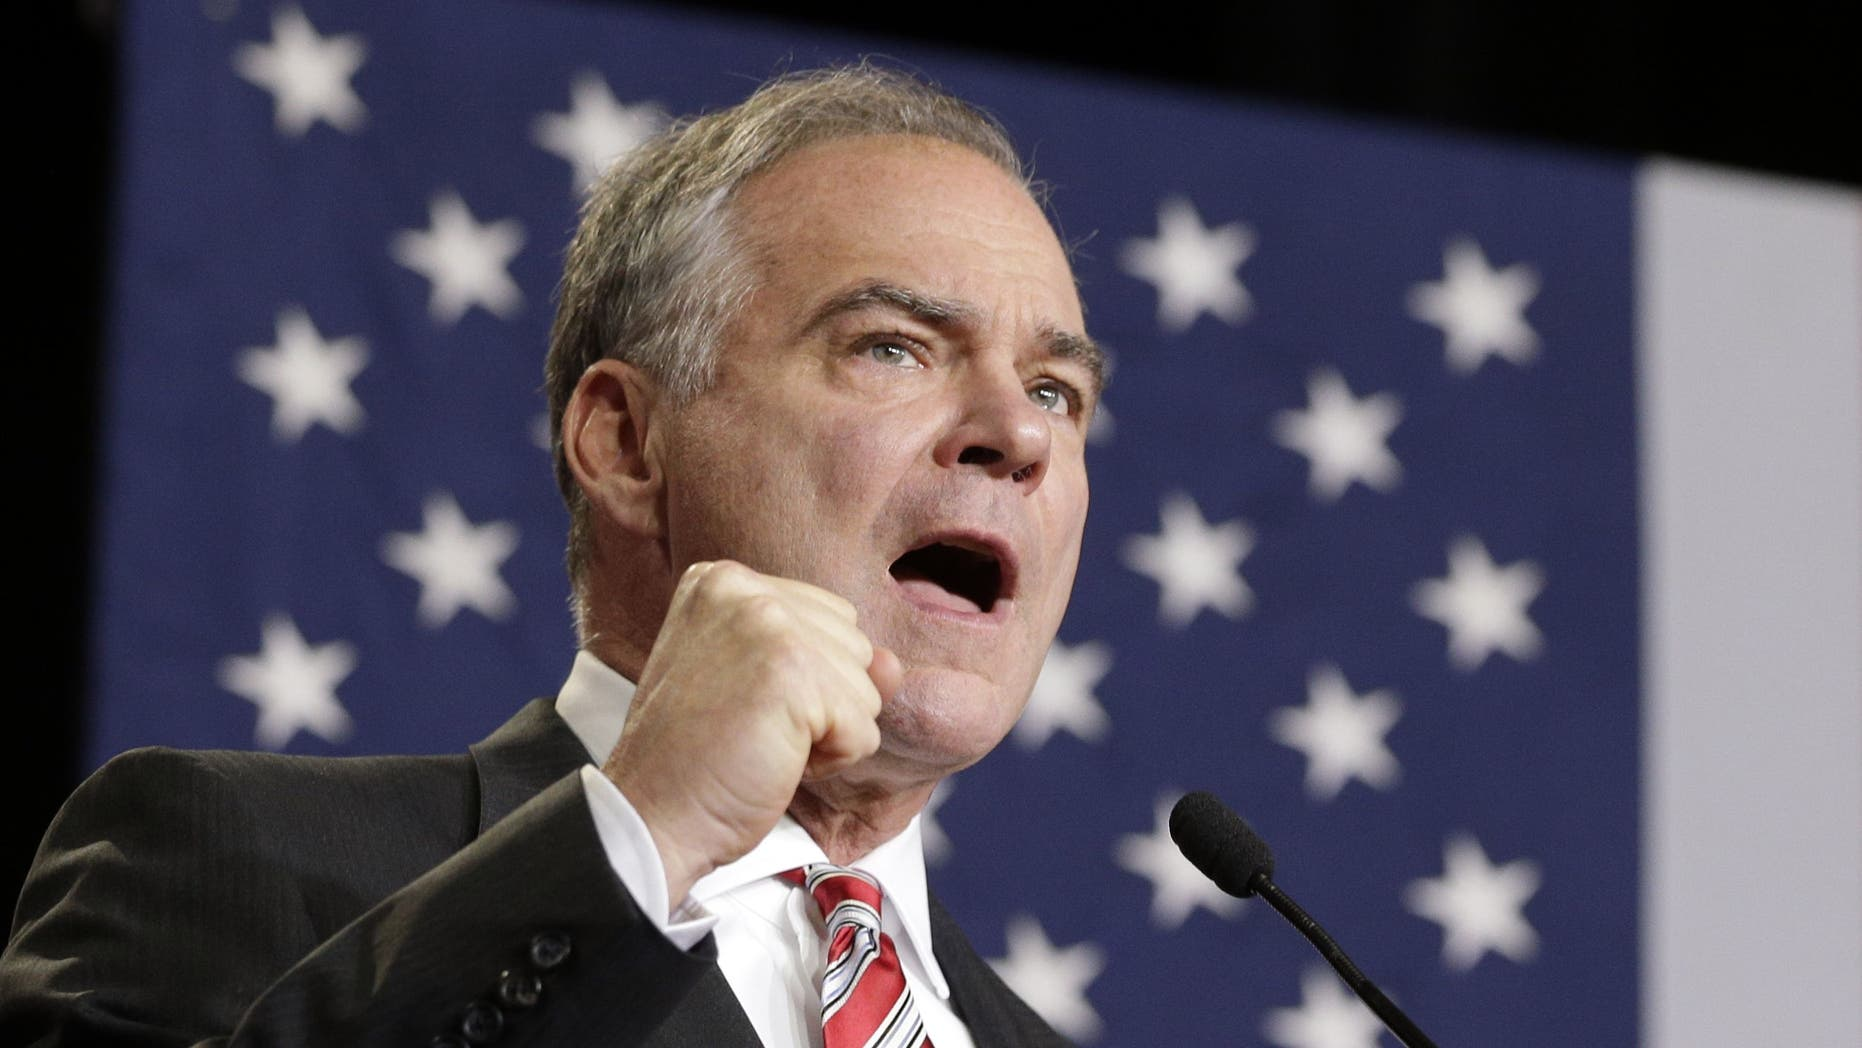 Copyright 2016 The Associated Press. All rights reserved. This material may not be published, broadcast, rewritten or redistributed without permission. Mandatory Credit: Photo by Chuck Burton/AP/REX/Shutterstock (5892866e) Tim Kaine Democratic vice presidential candidate, Sen. Tim Kaine, D-Va. speaks during a campaign rally in Wilmington, N.C Tim Kaine vice presidential campaign, Wilmington, North Carolina, USA - 06 Sep 2016